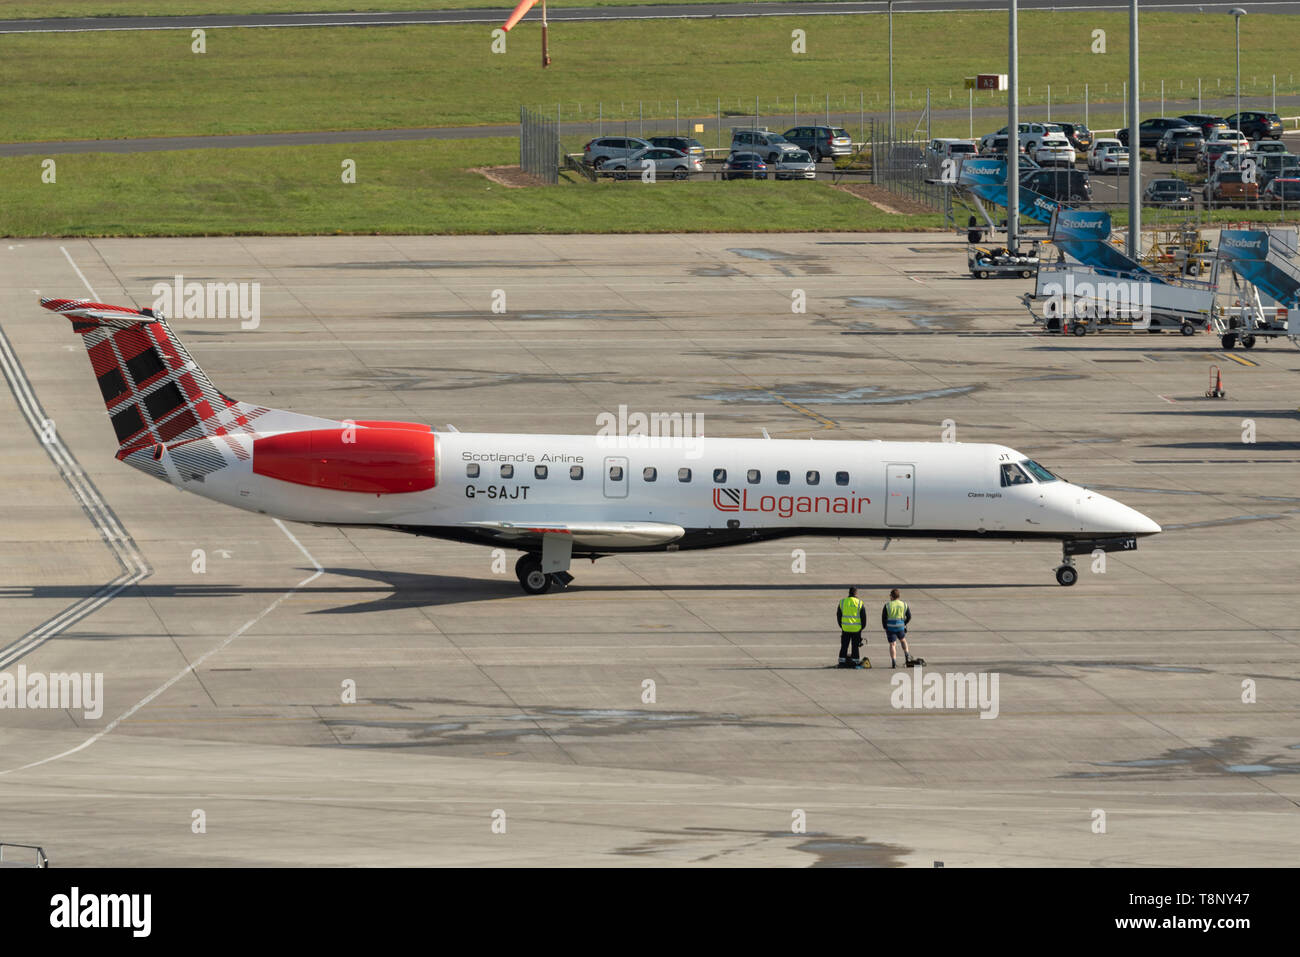 Loganair Embraer ERJ135 at London Southend Airport, Essex, UK. Tartan tail. On the apron with ground handlers Stock Photo